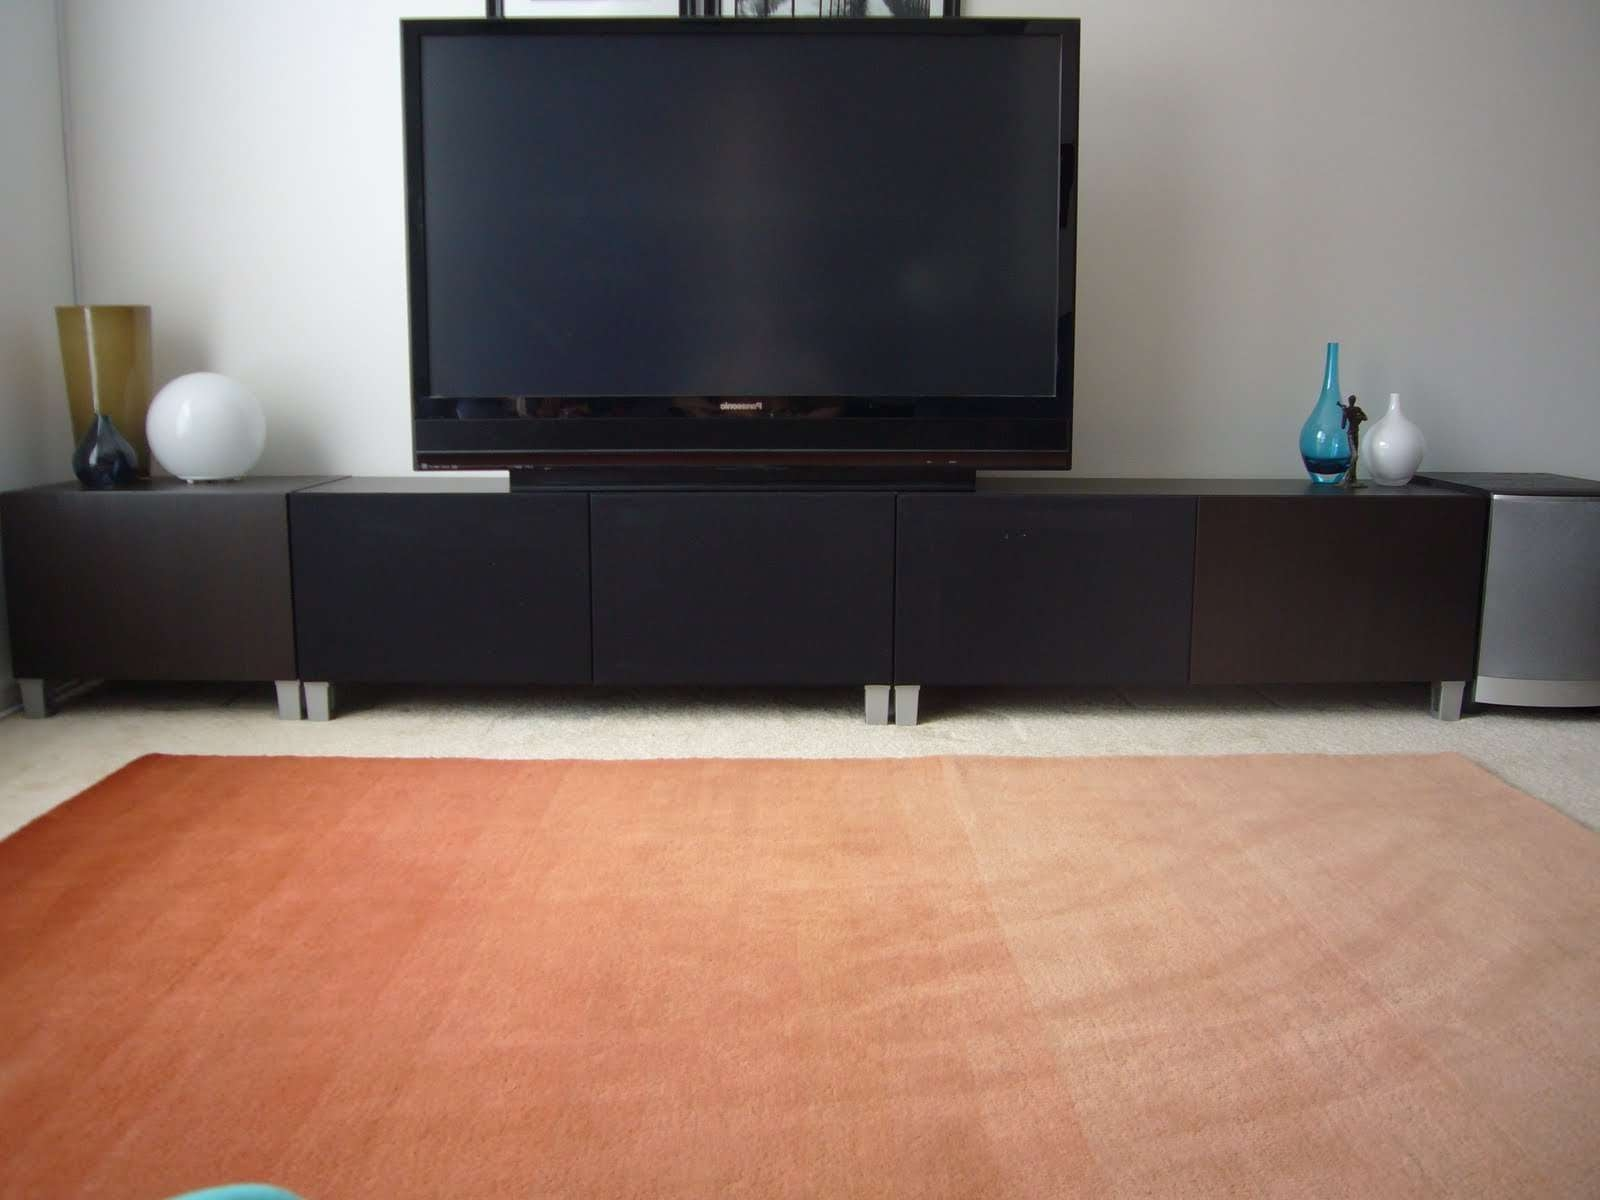 Ikea Besta Tv Stand With Black Tv O Top Long Black Wooden Cabinet Inside Long Black Tv Stands (View 5 of 15)